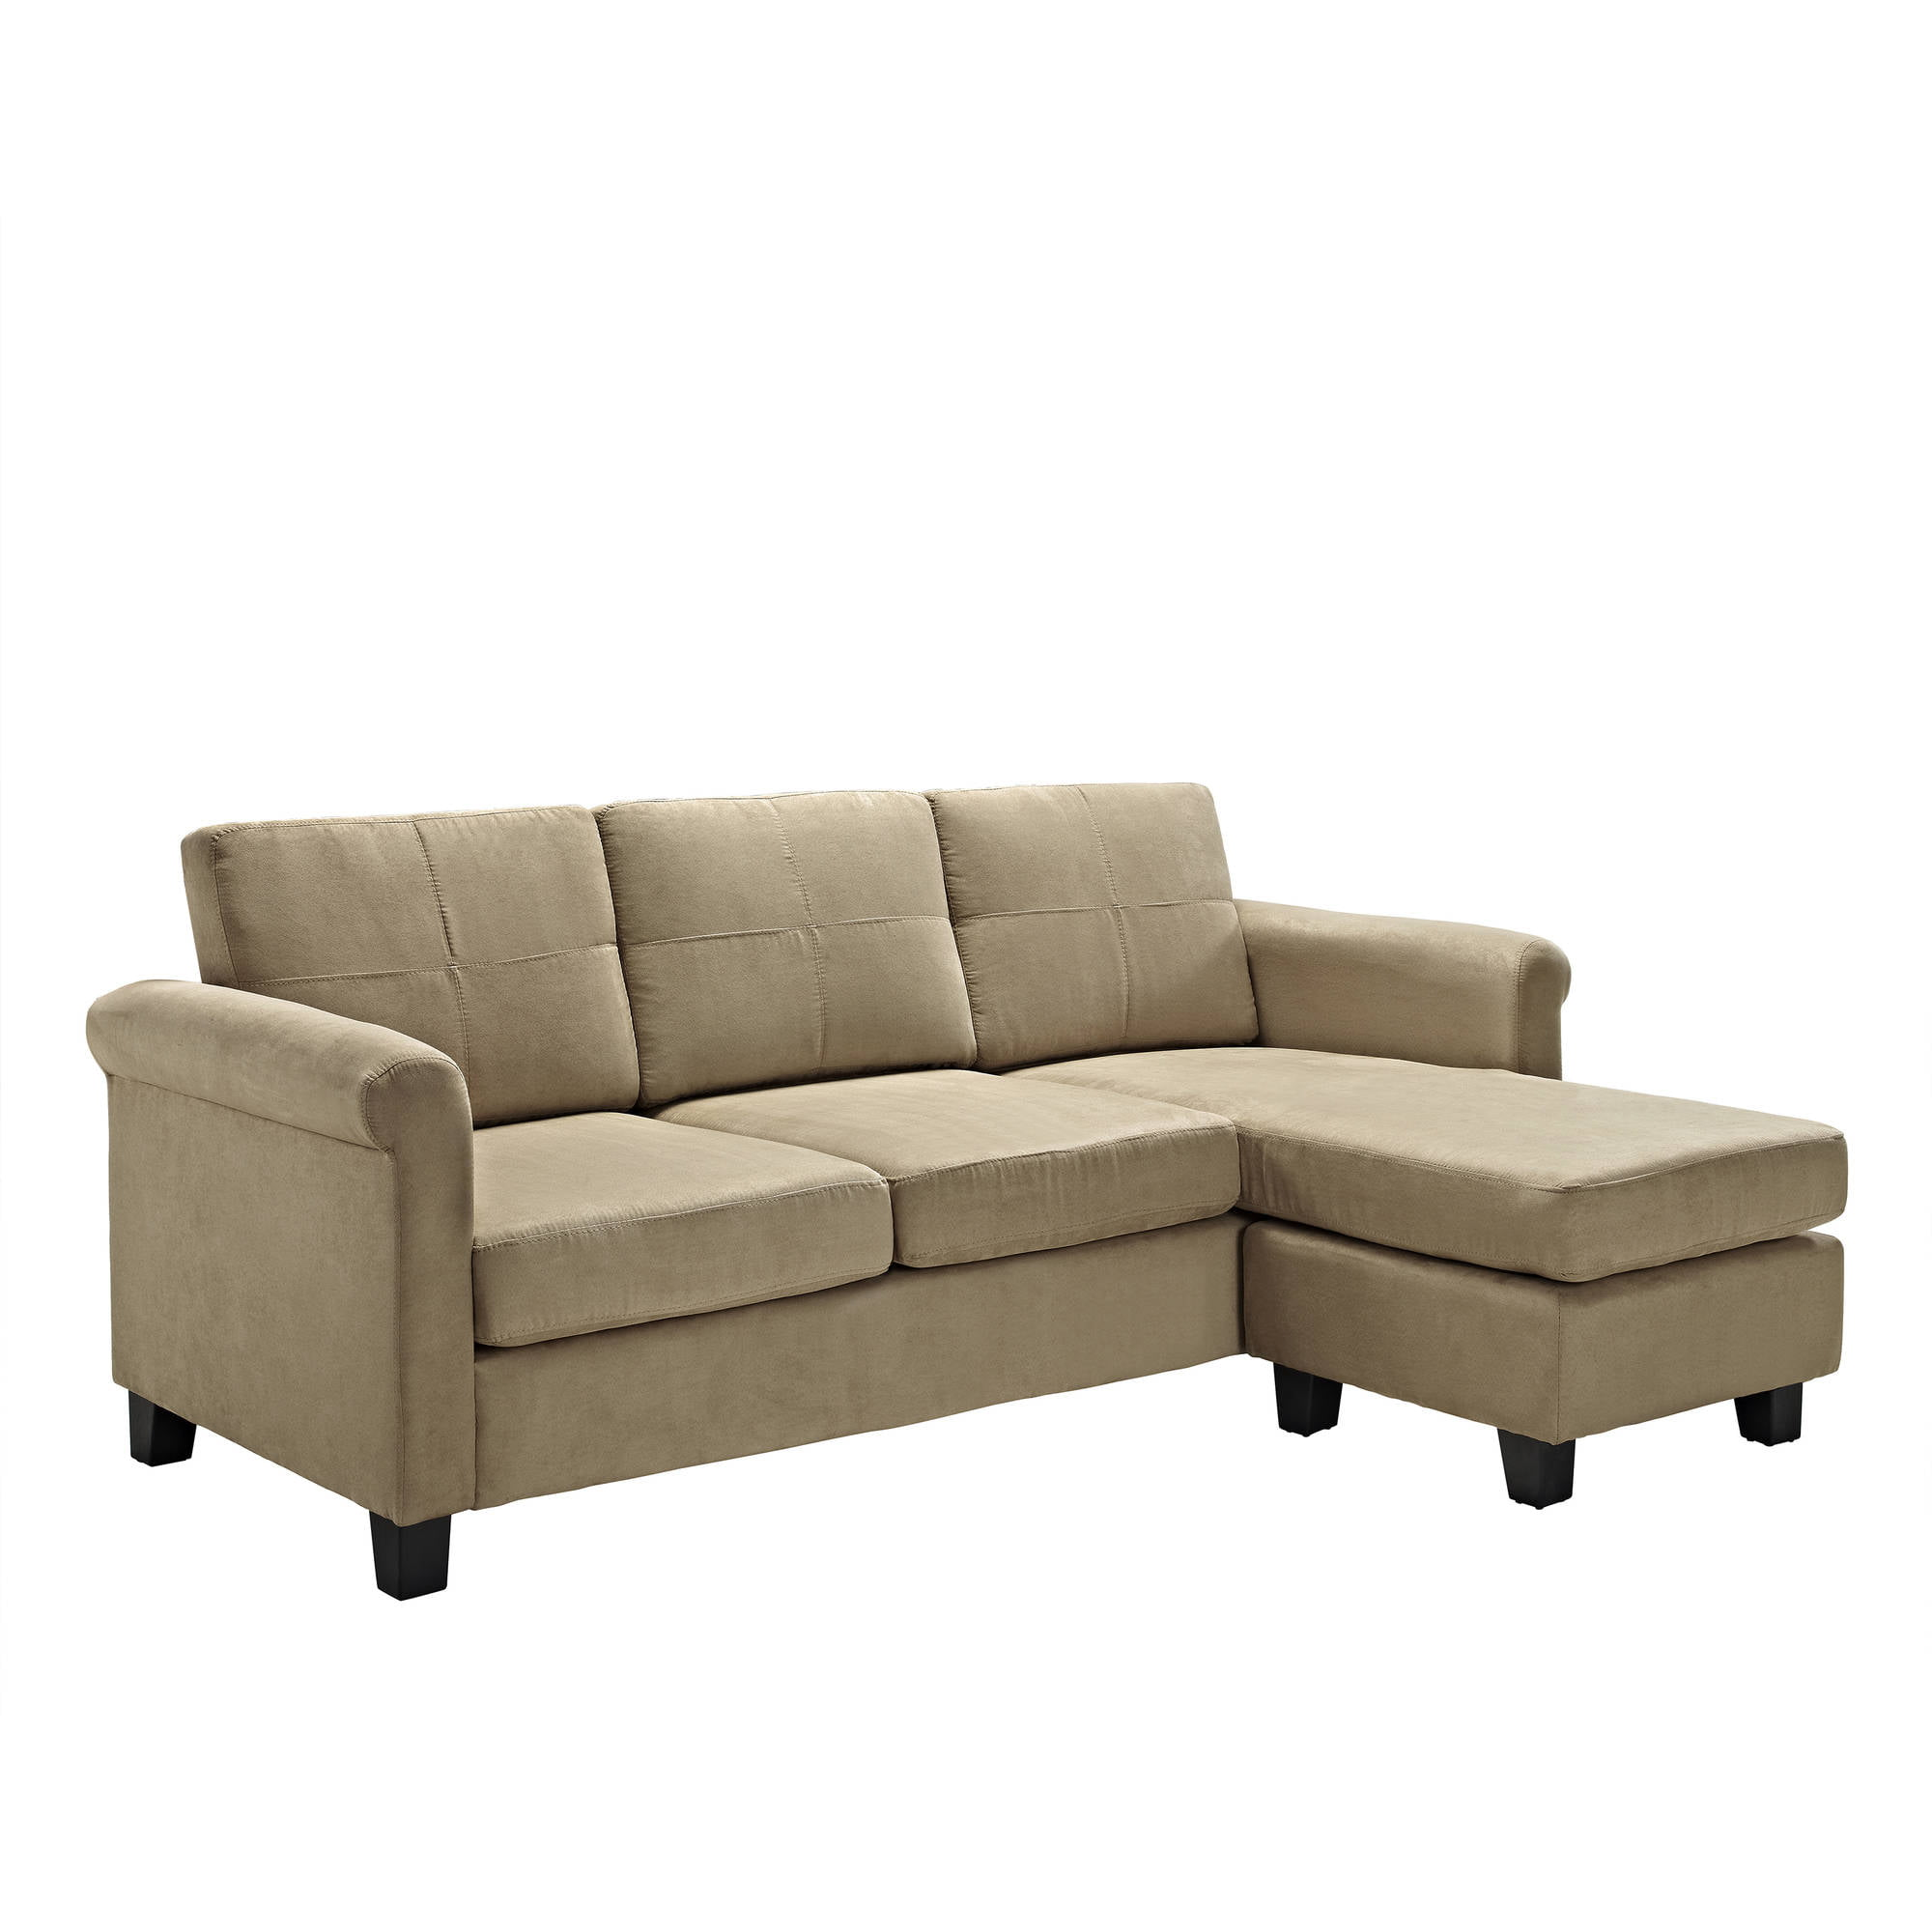 sofas pin annual for guide sectionals small the best spaces sleeper sectional